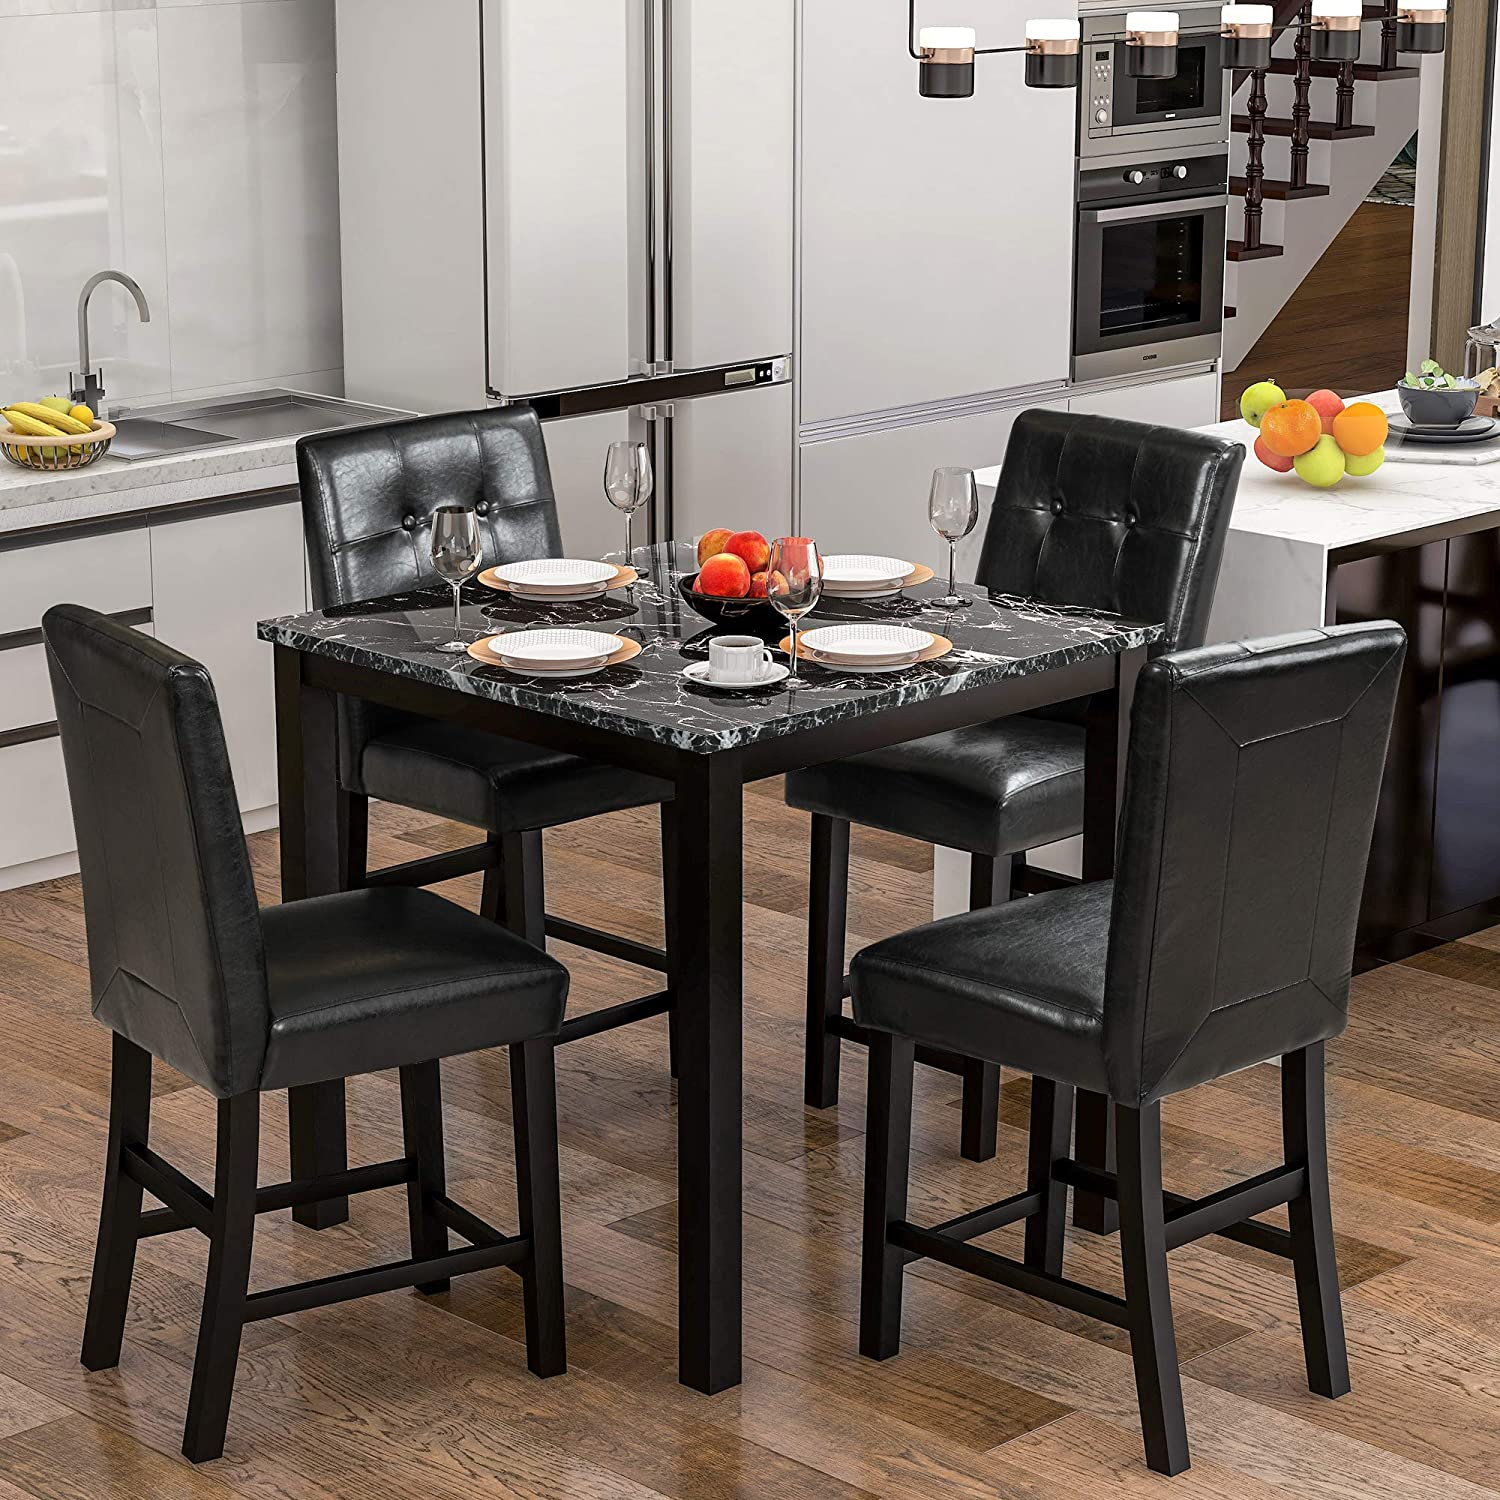 P Max 81% OFF PURLOVE 5 Piece Dining Over item handling ☆ Room Table L with Set Kitchen